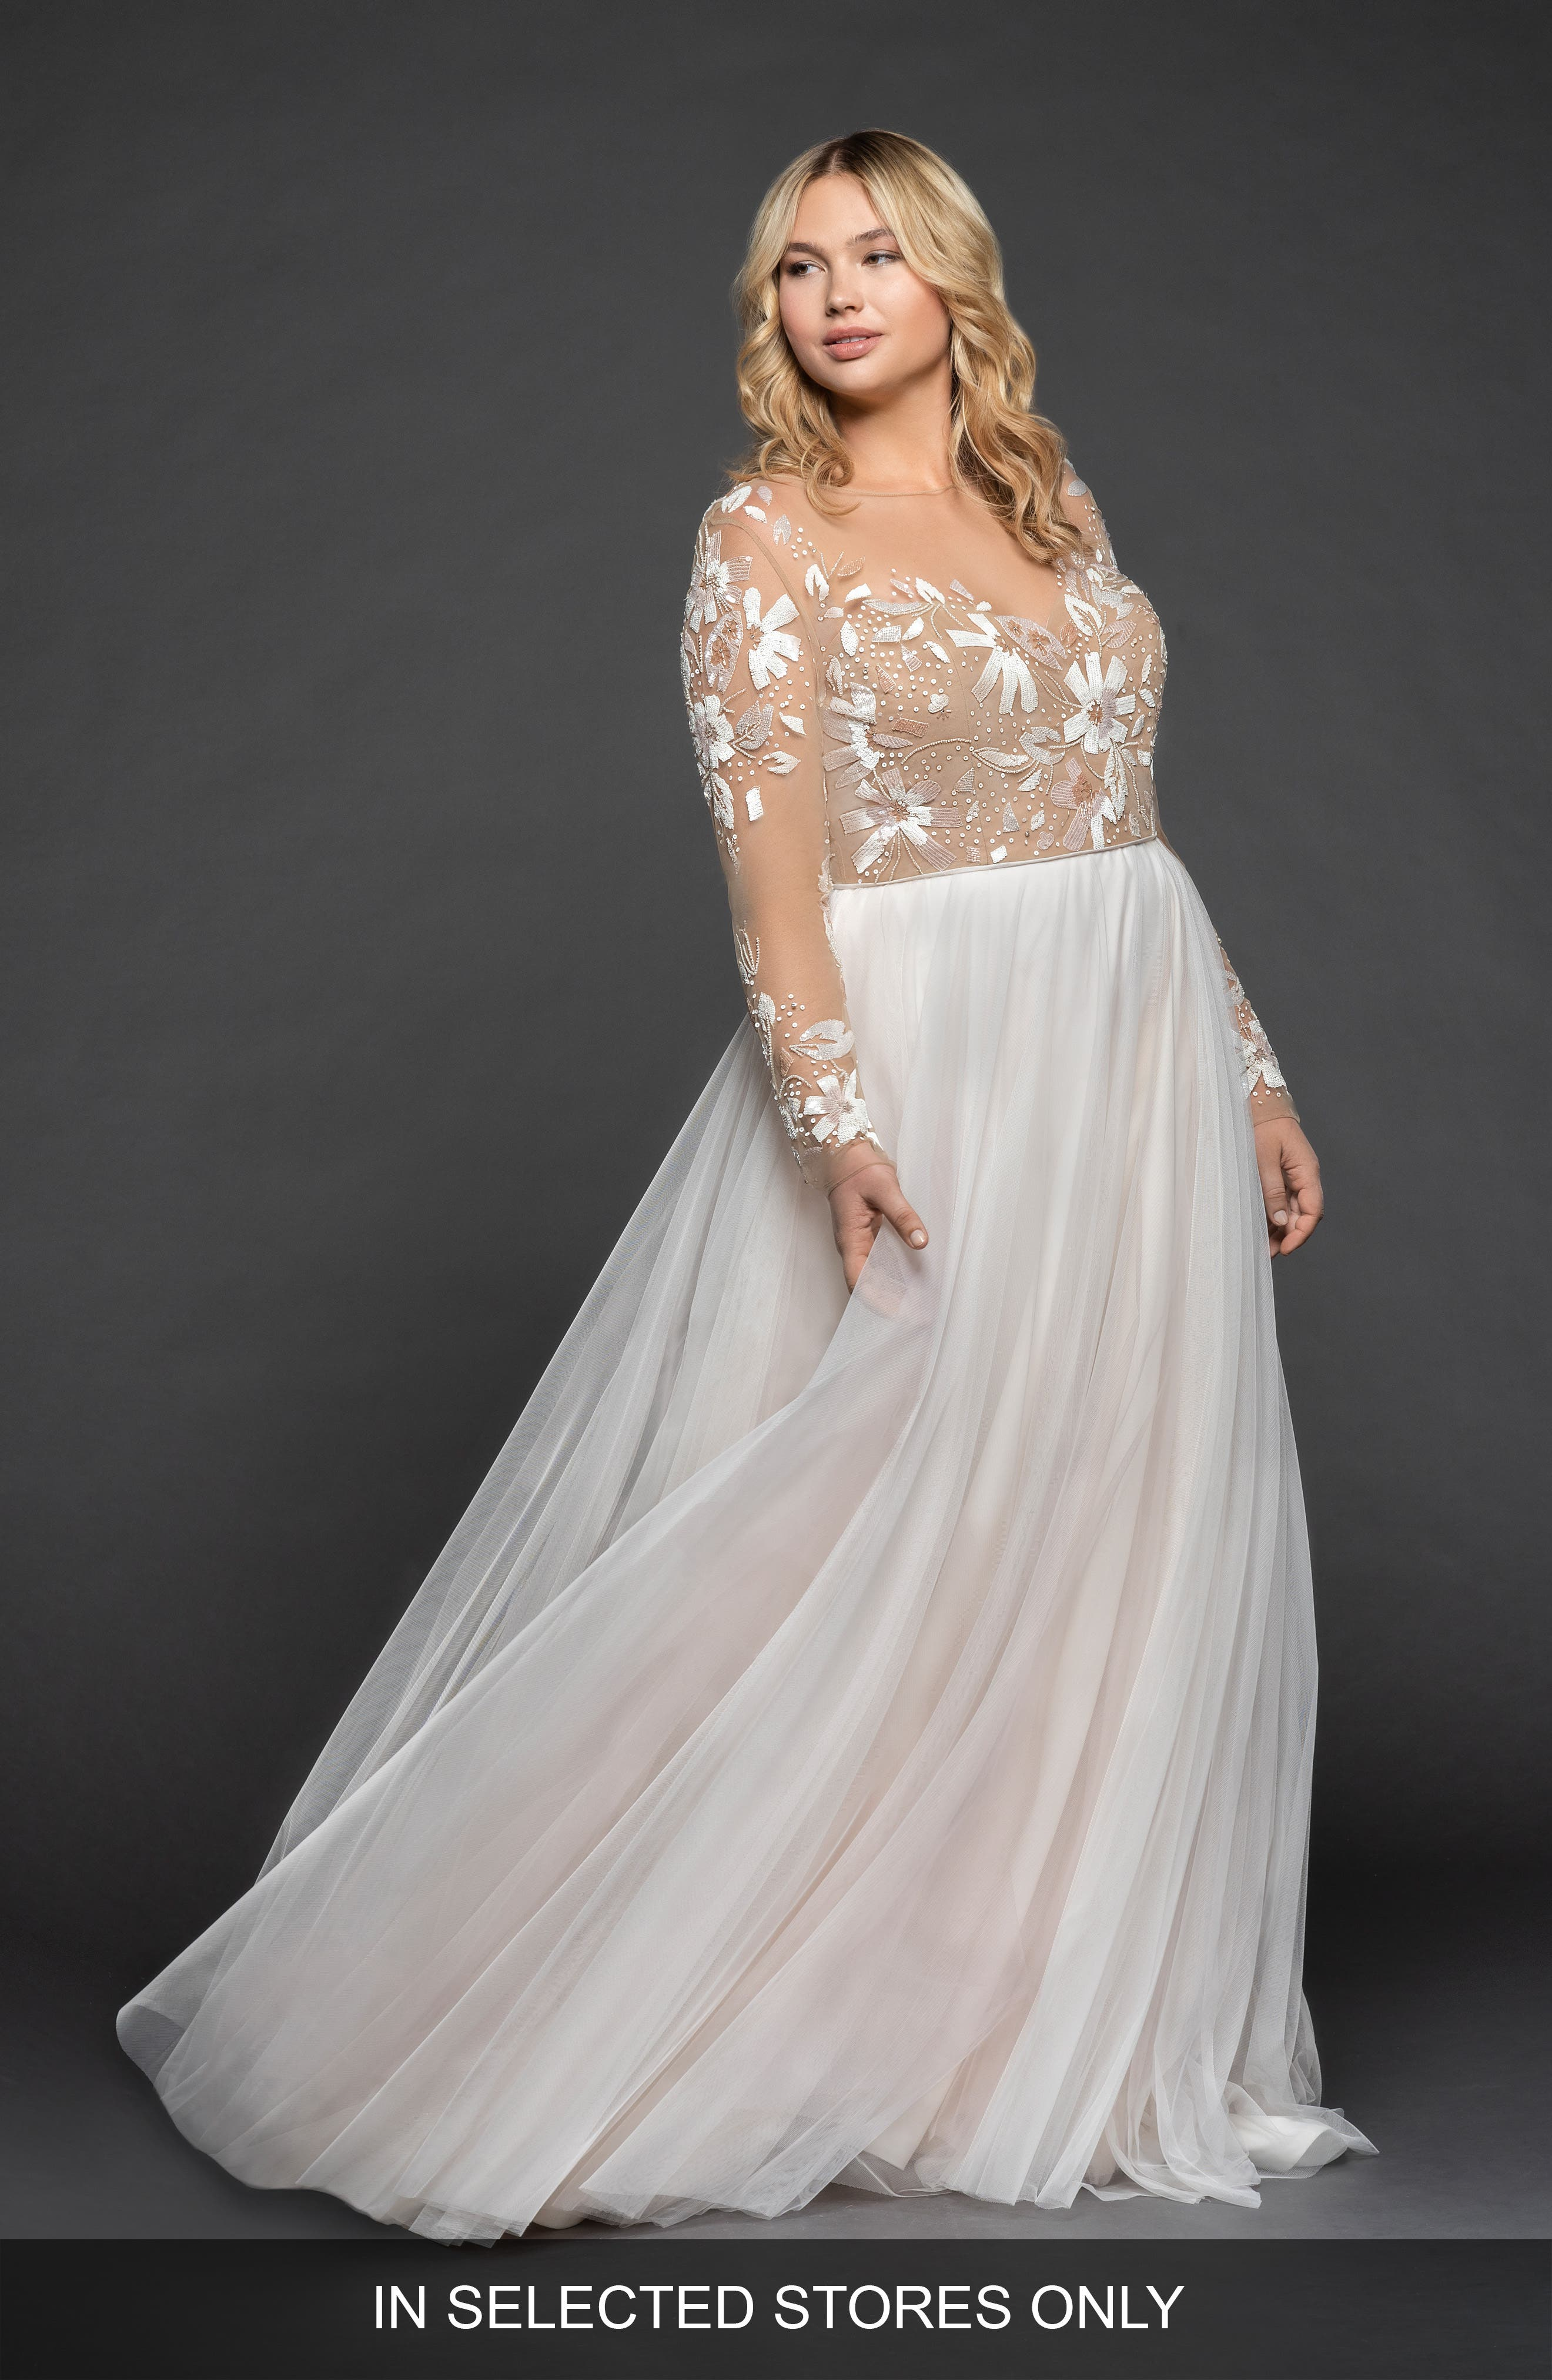 Remmington Embellished English Tulle Gown,                             Main thumbnail 1, color,                             IVORY